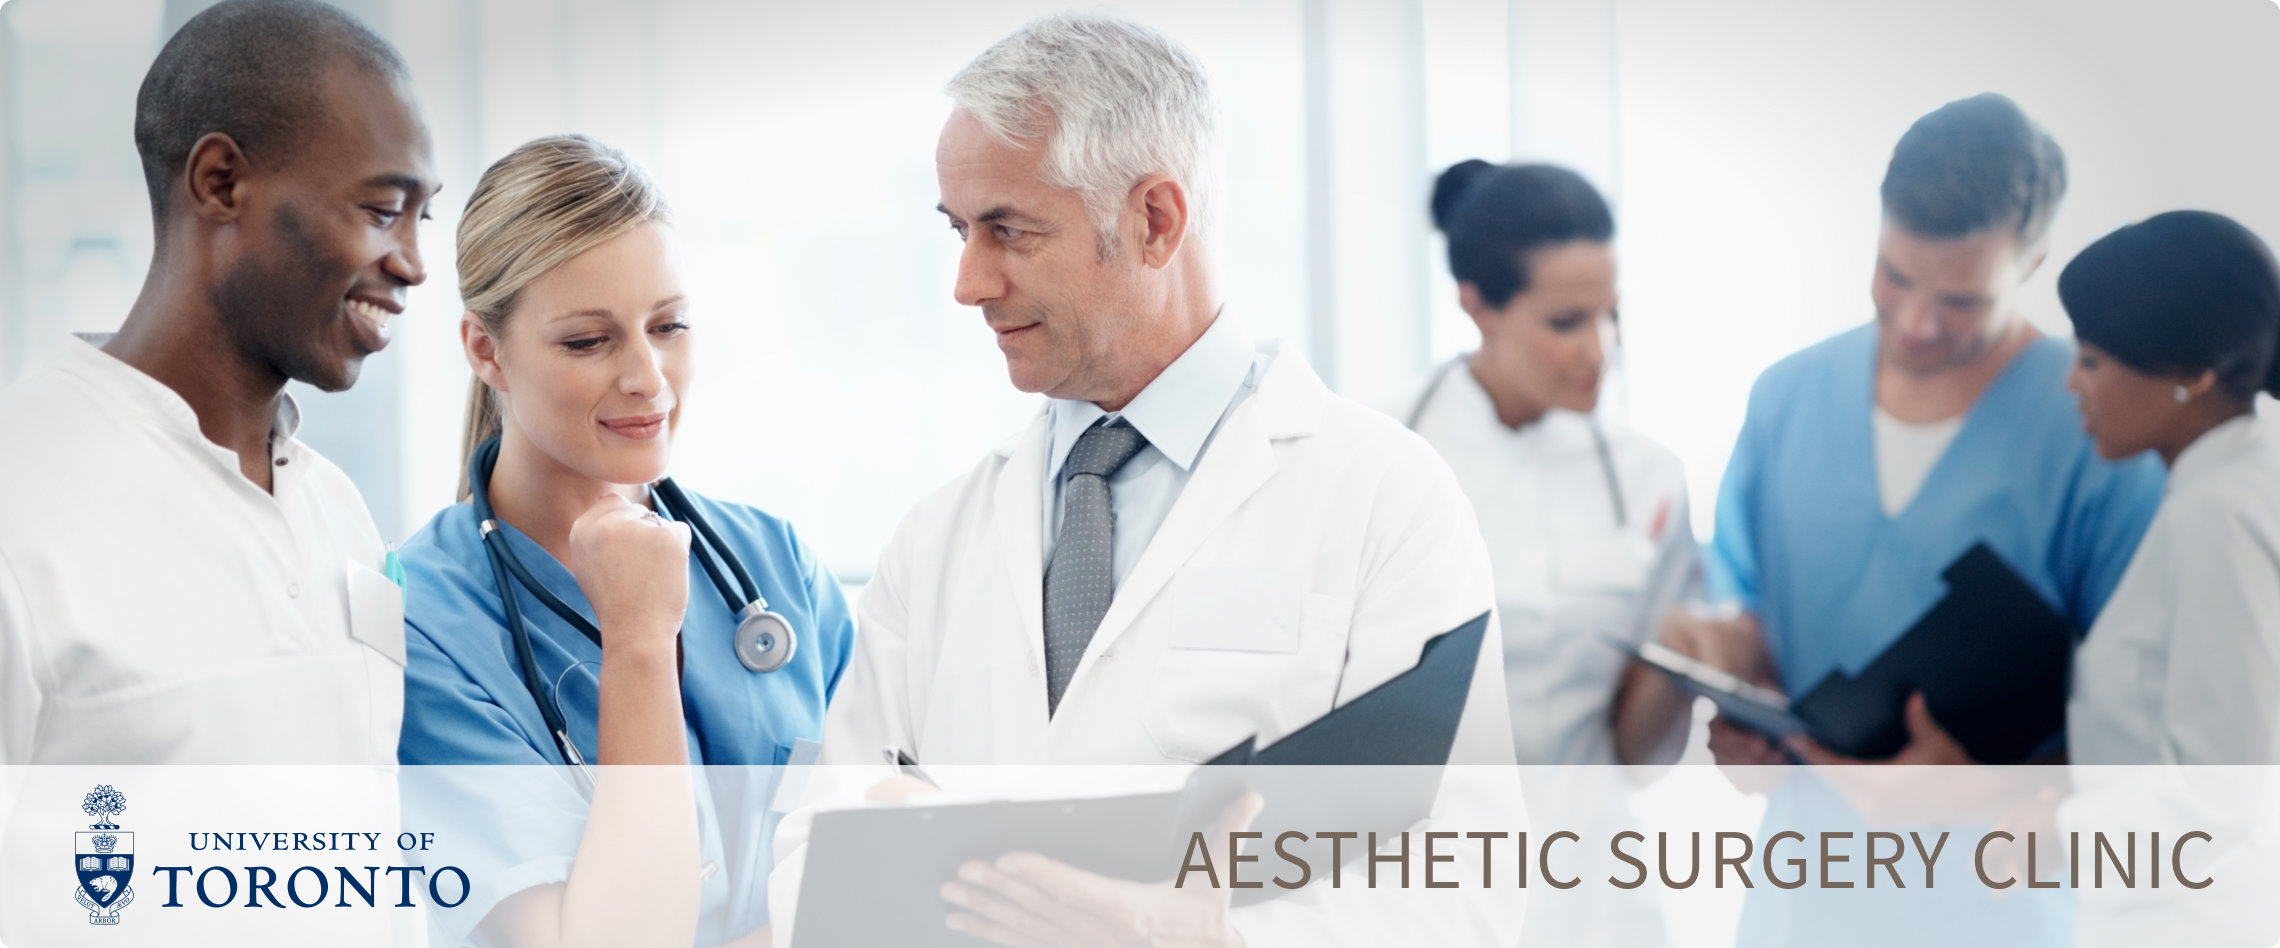 Home - Division of Plastic and Reconstructive Surgery at the